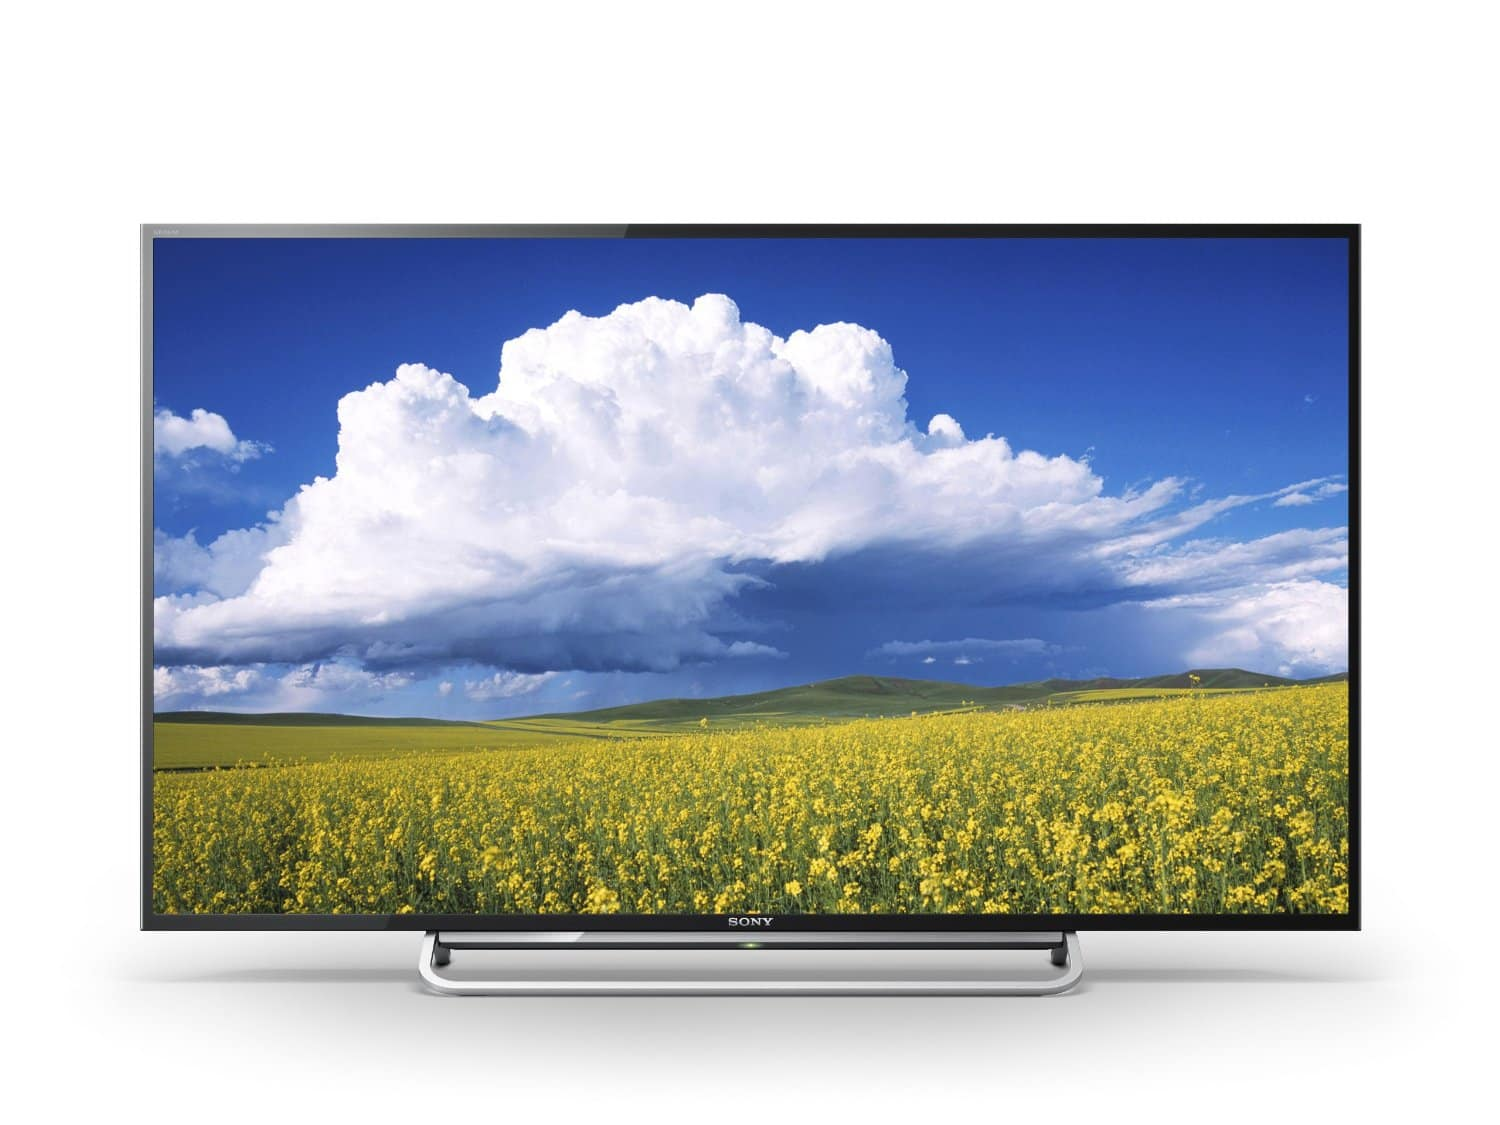 "Sony KDL-60W630B 60"" Full HD 1080p 120Hz Smart LED TV $1,099.00 + Free Shipping"